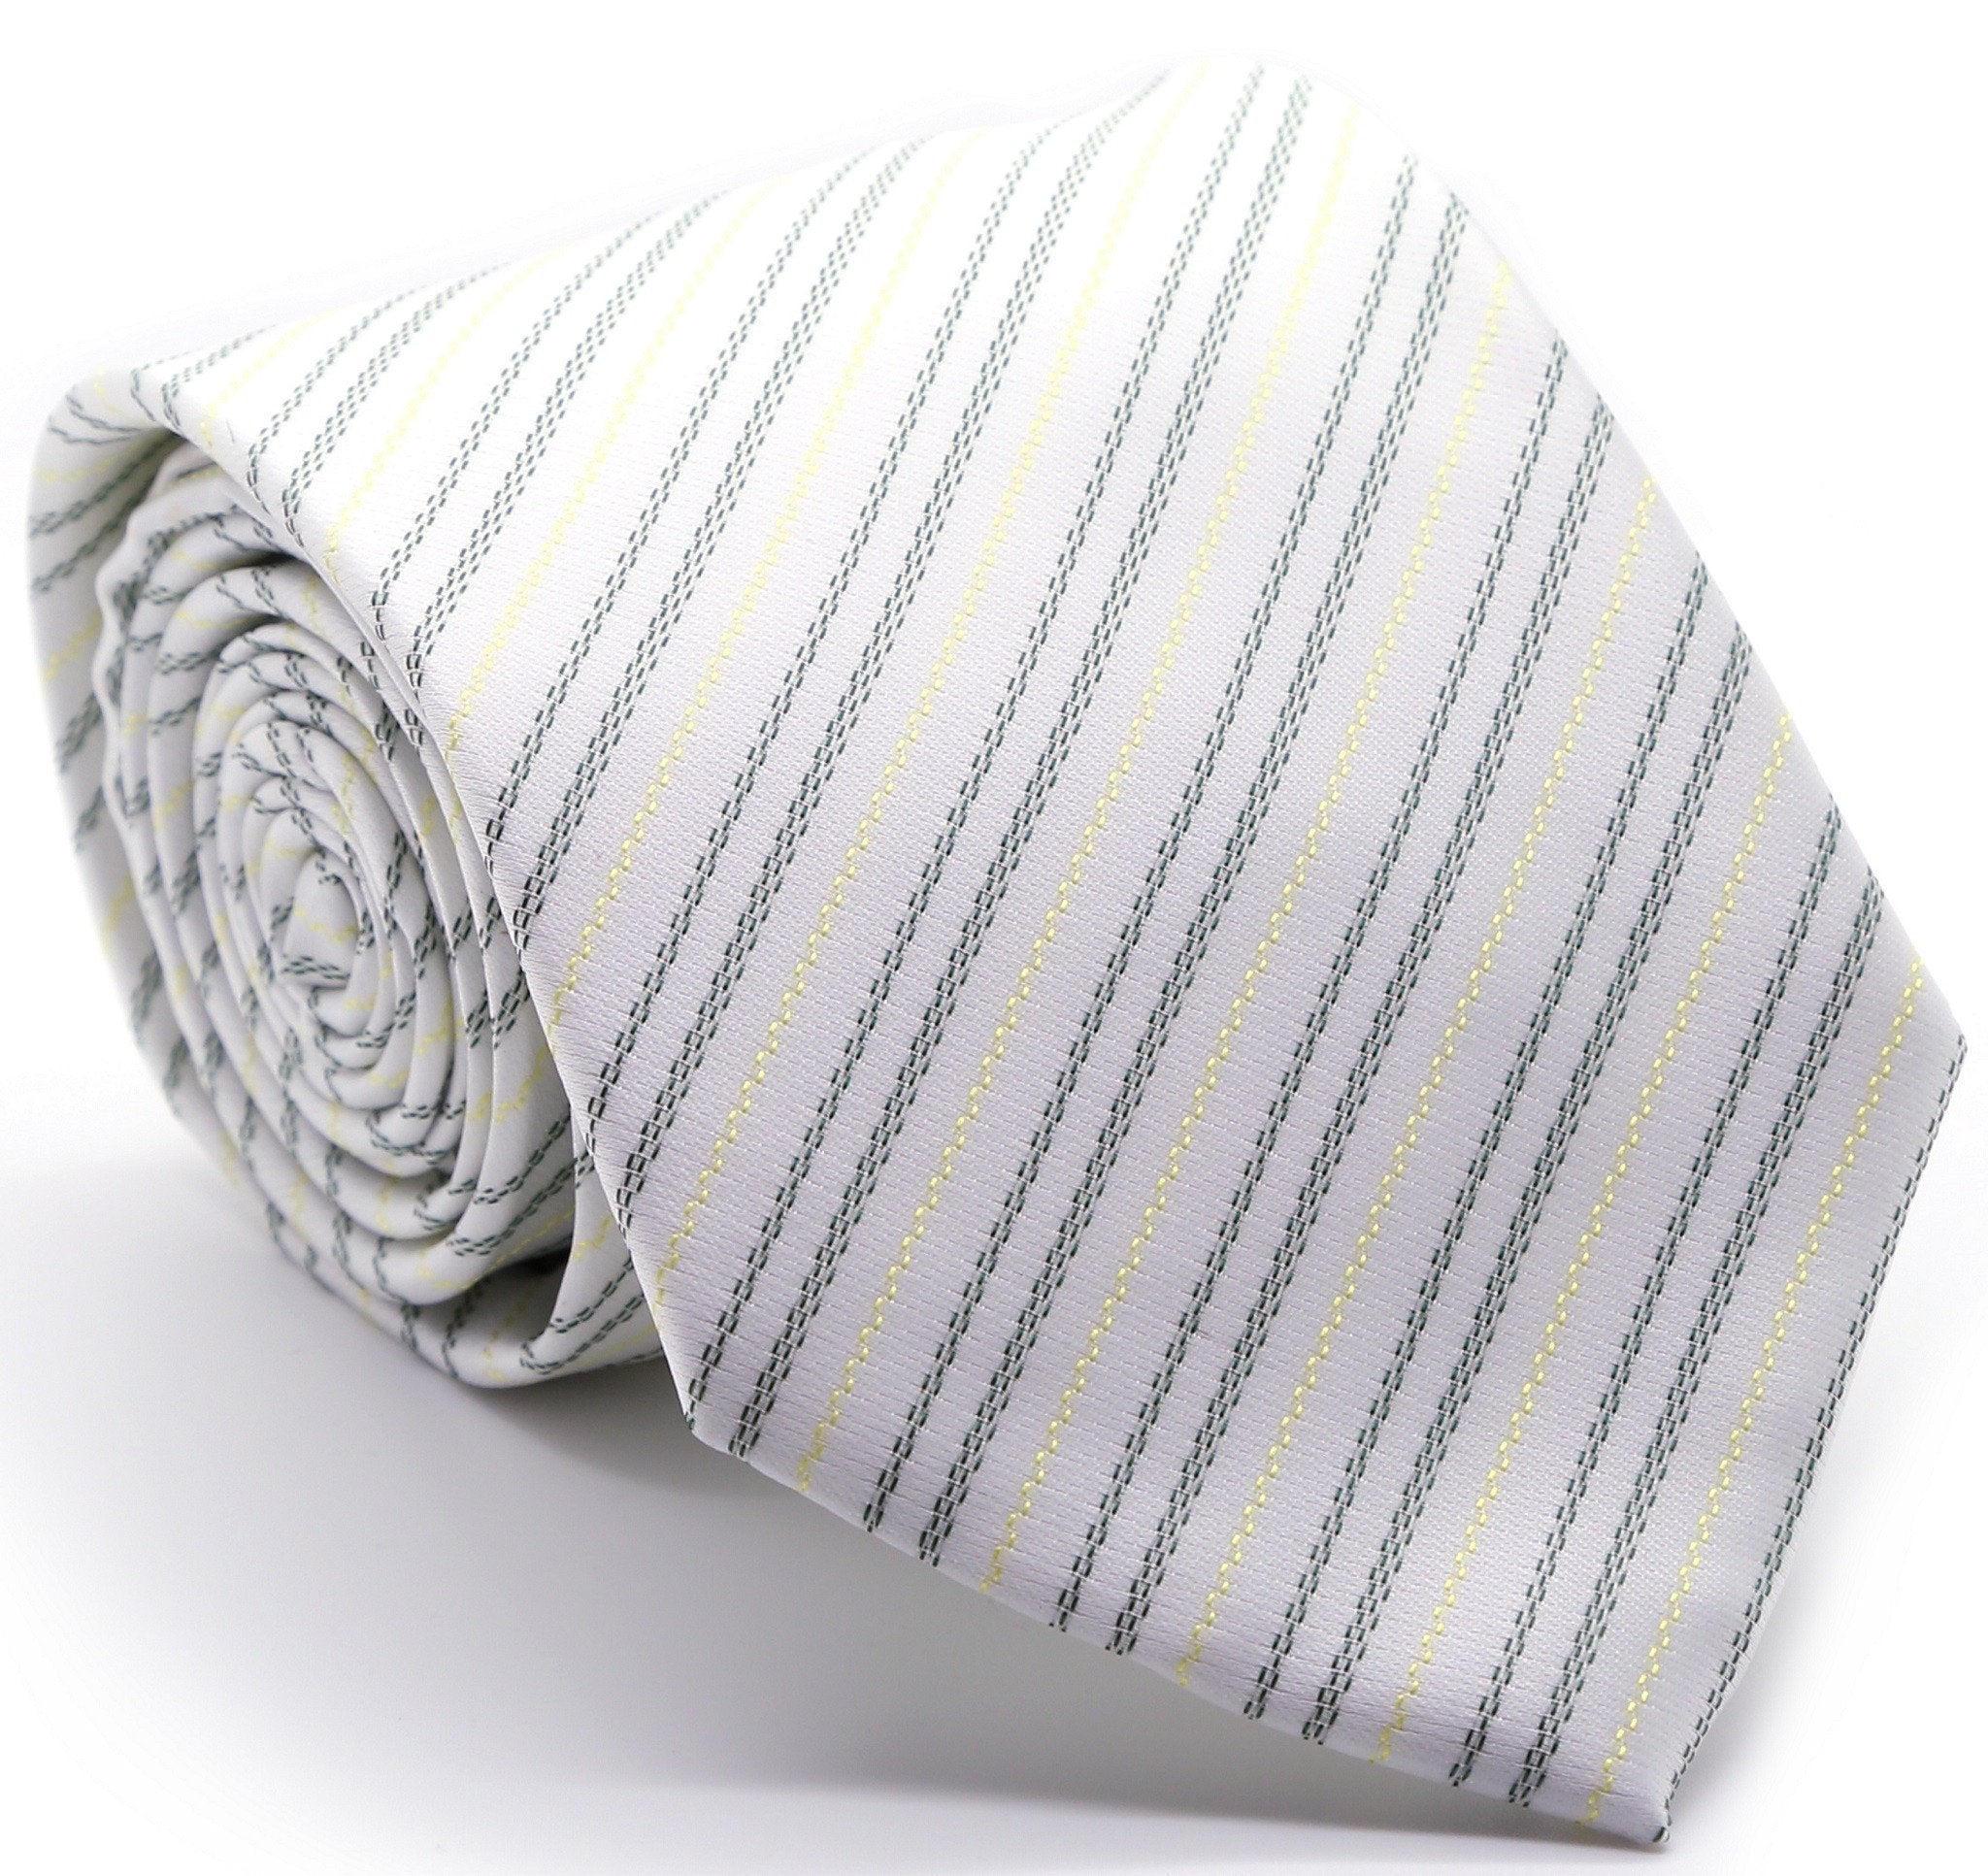 Premium English Striped Ties - Giorgio's Menswear